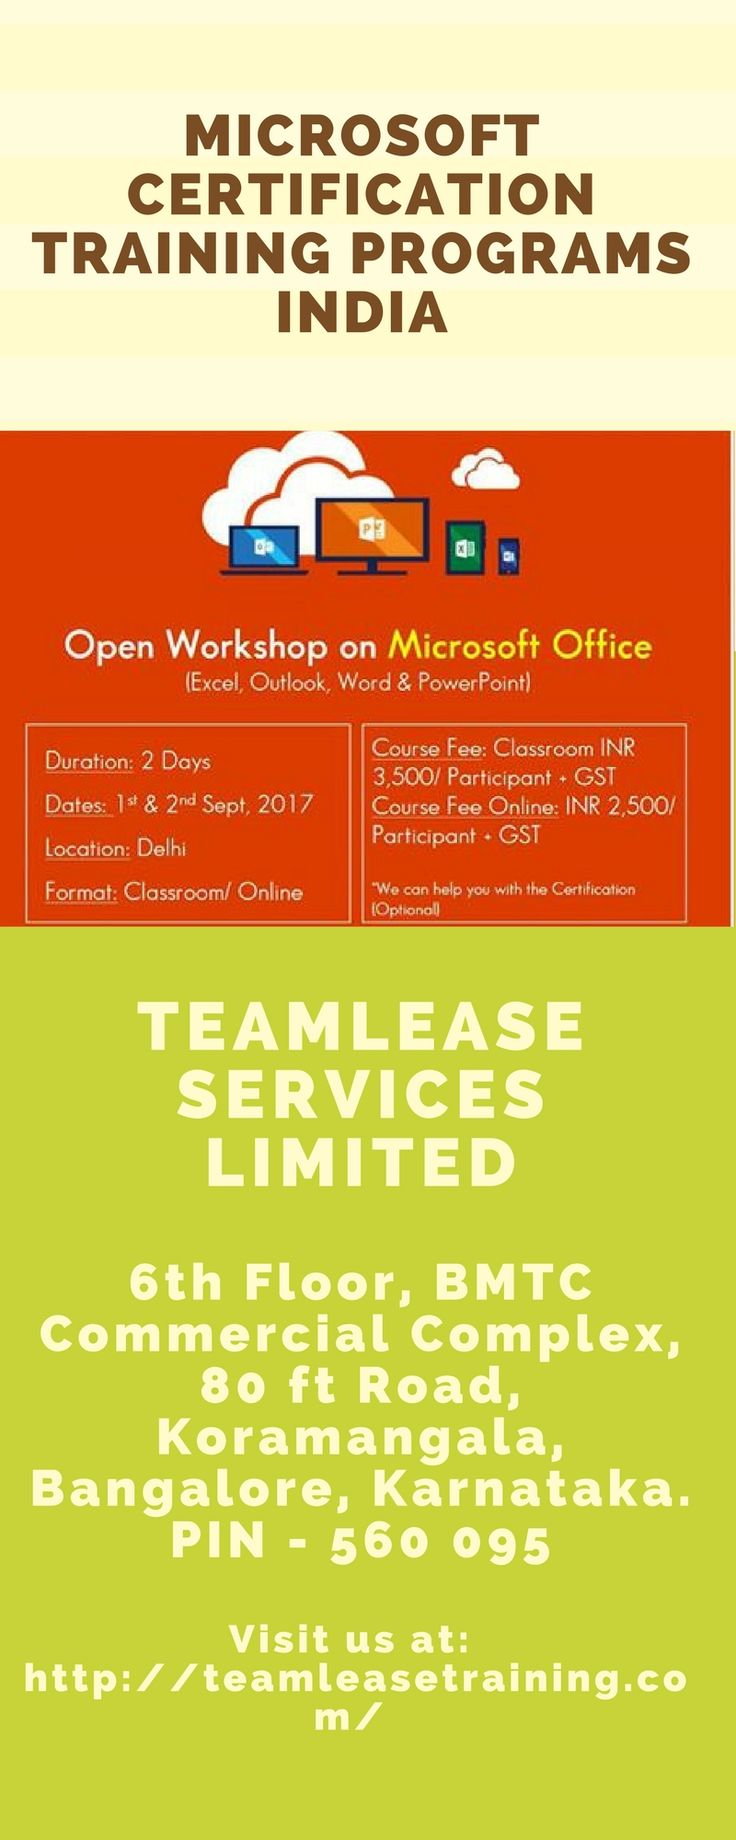 Pin by teamleasetraining on microsoft certification training pin by teamleasetraining on microsoft certification training programs india pinterest microsoft xflitez Image collections